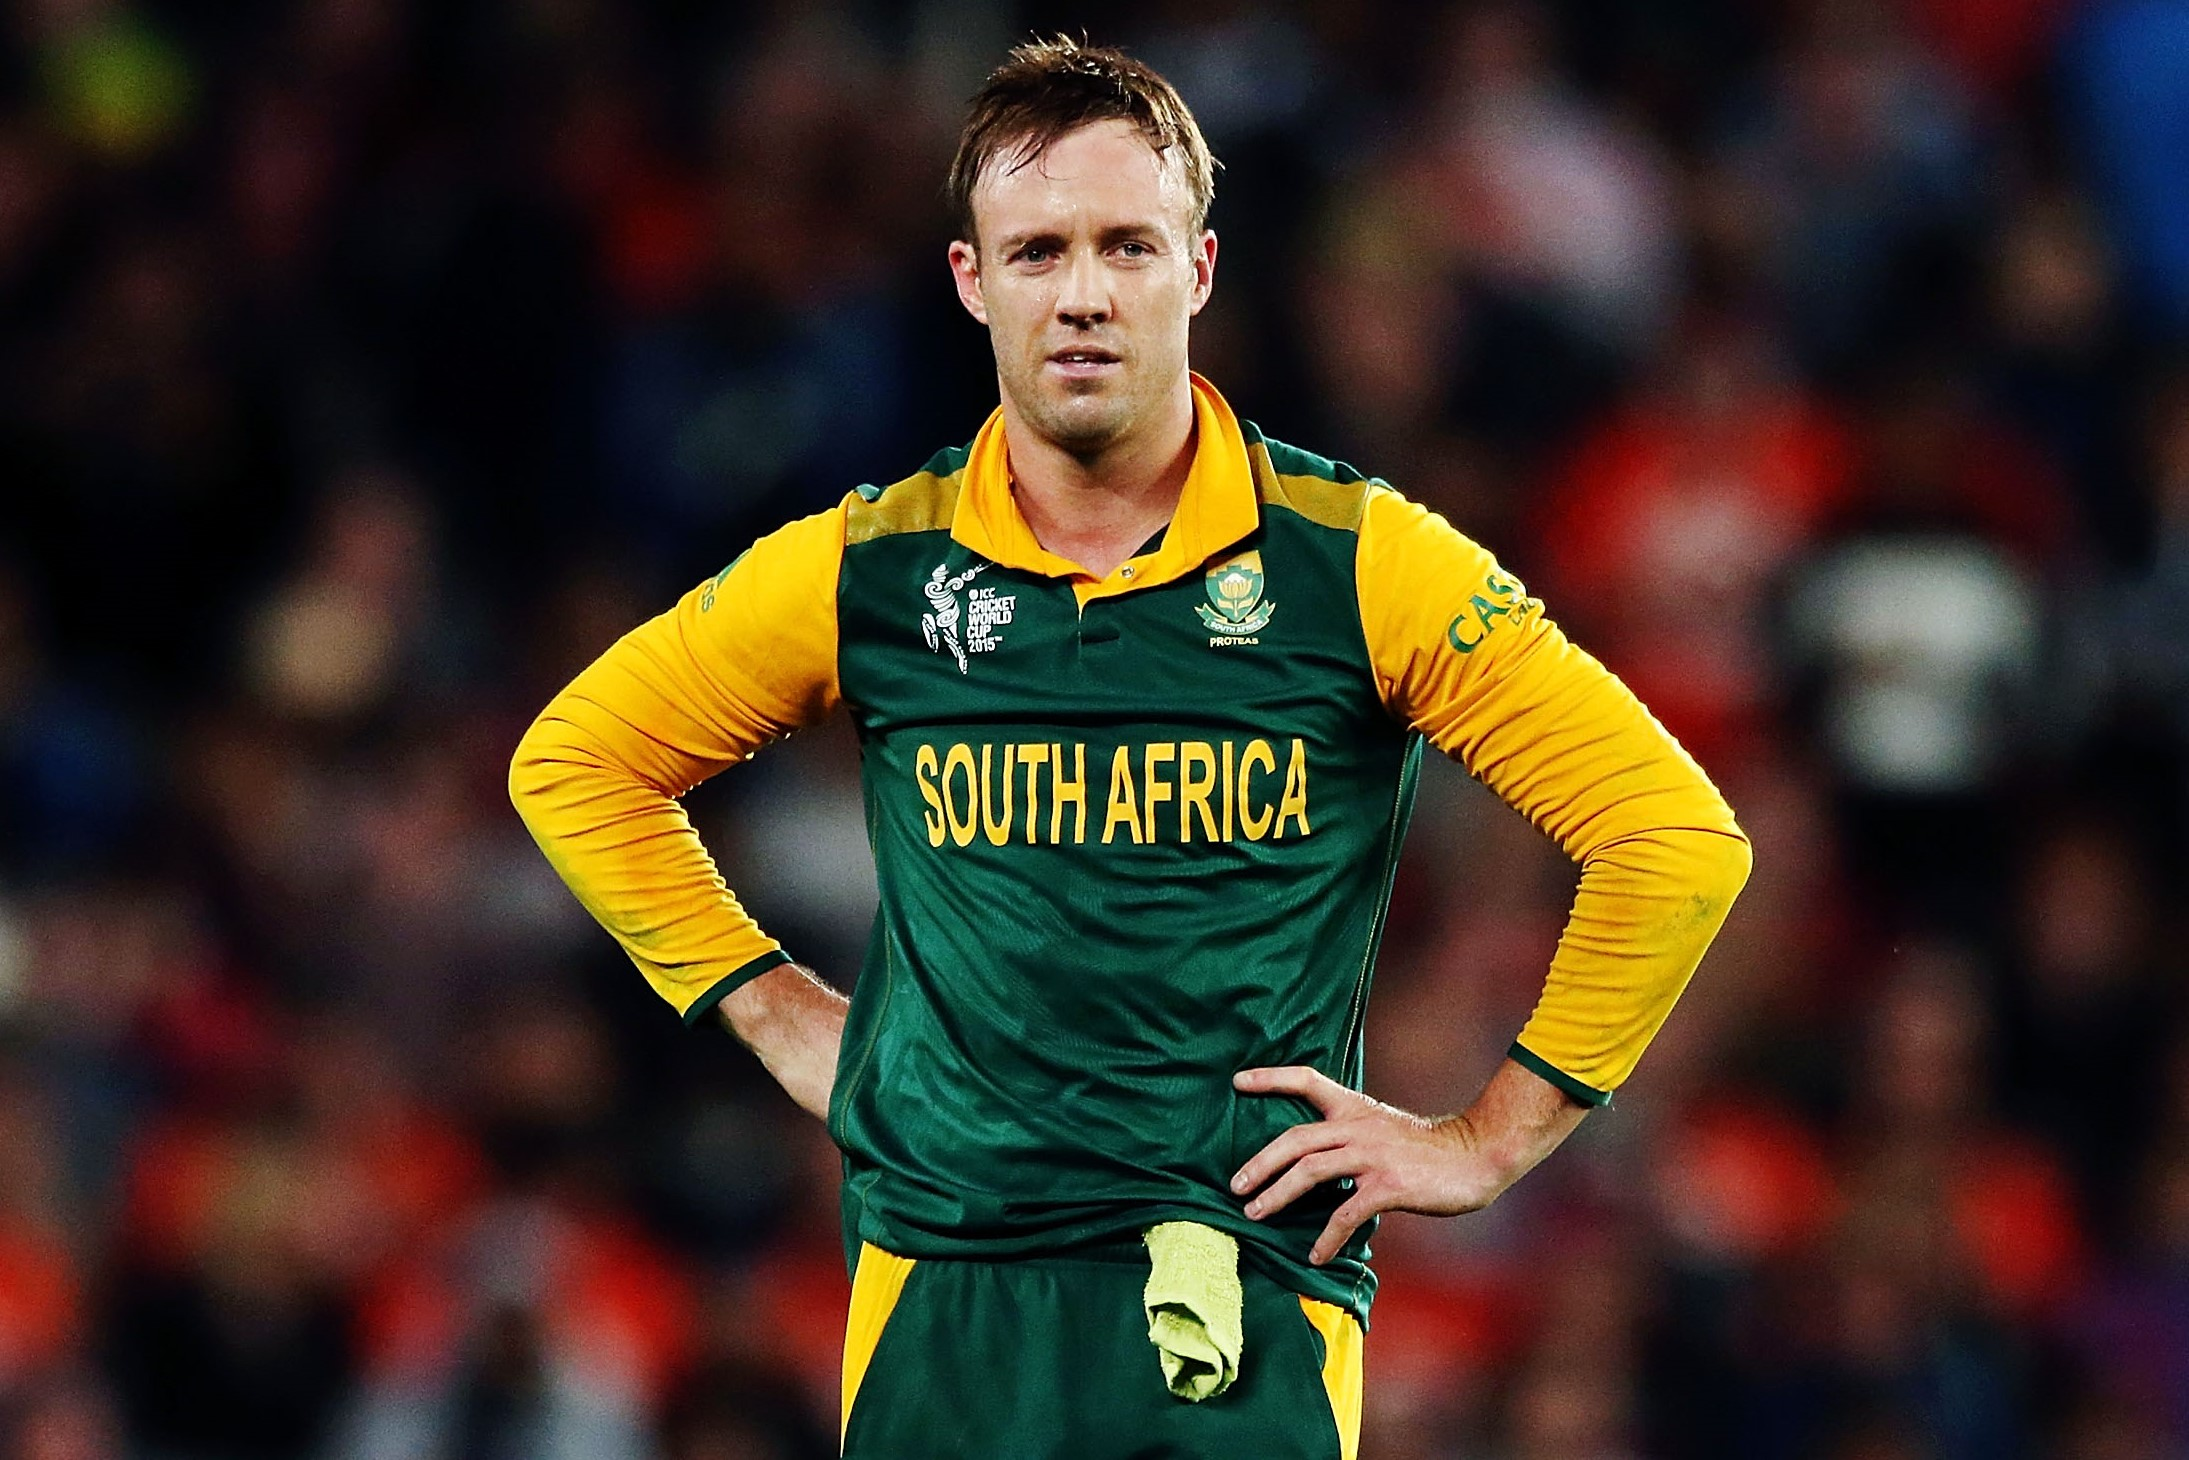 countries with 7 letters in name south africa turned de villiers cwc19 return offer 26961 | AB de Villiers